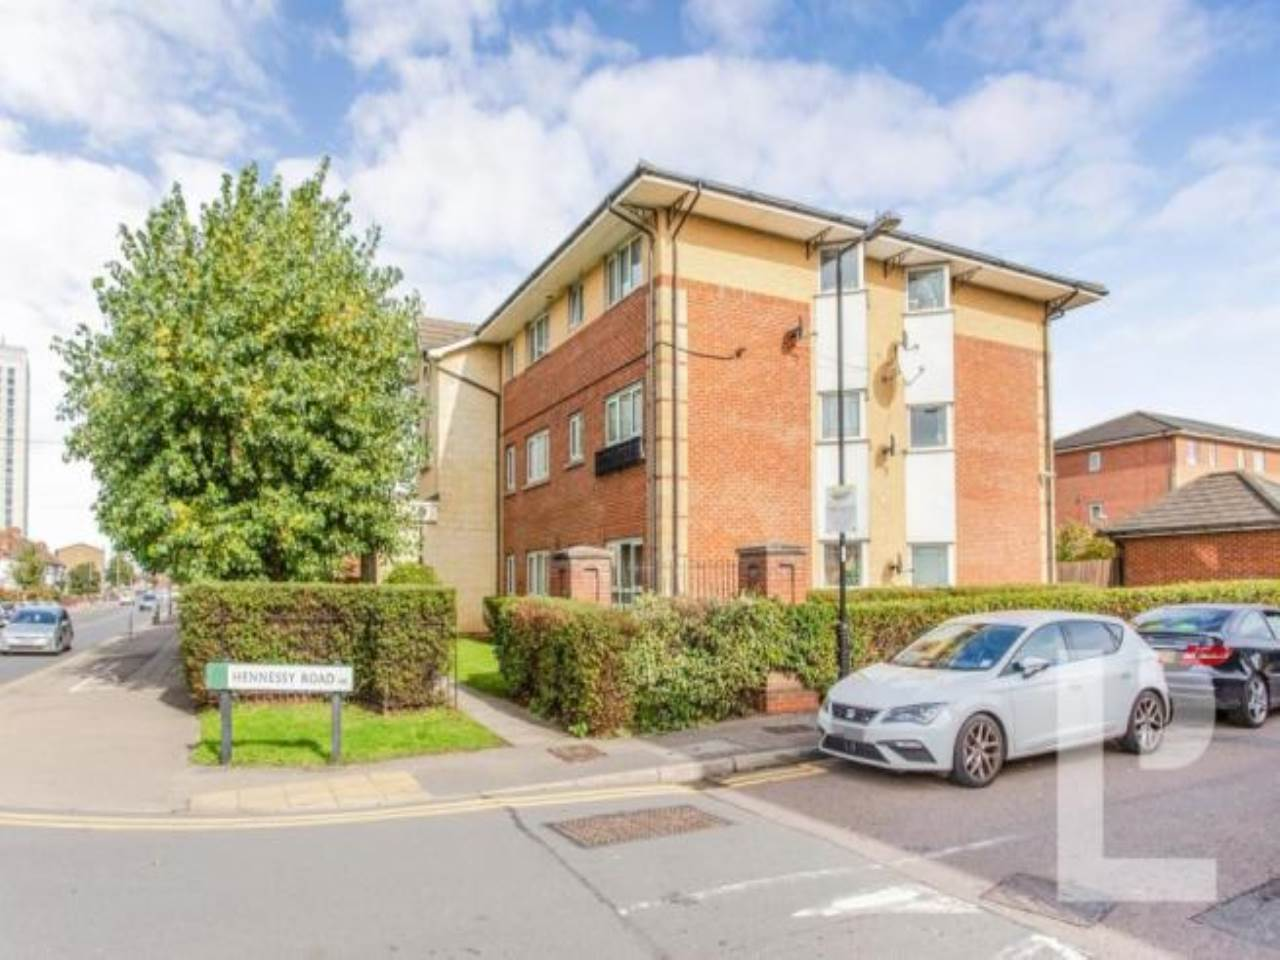 1 bed apartment for sale in London, N9